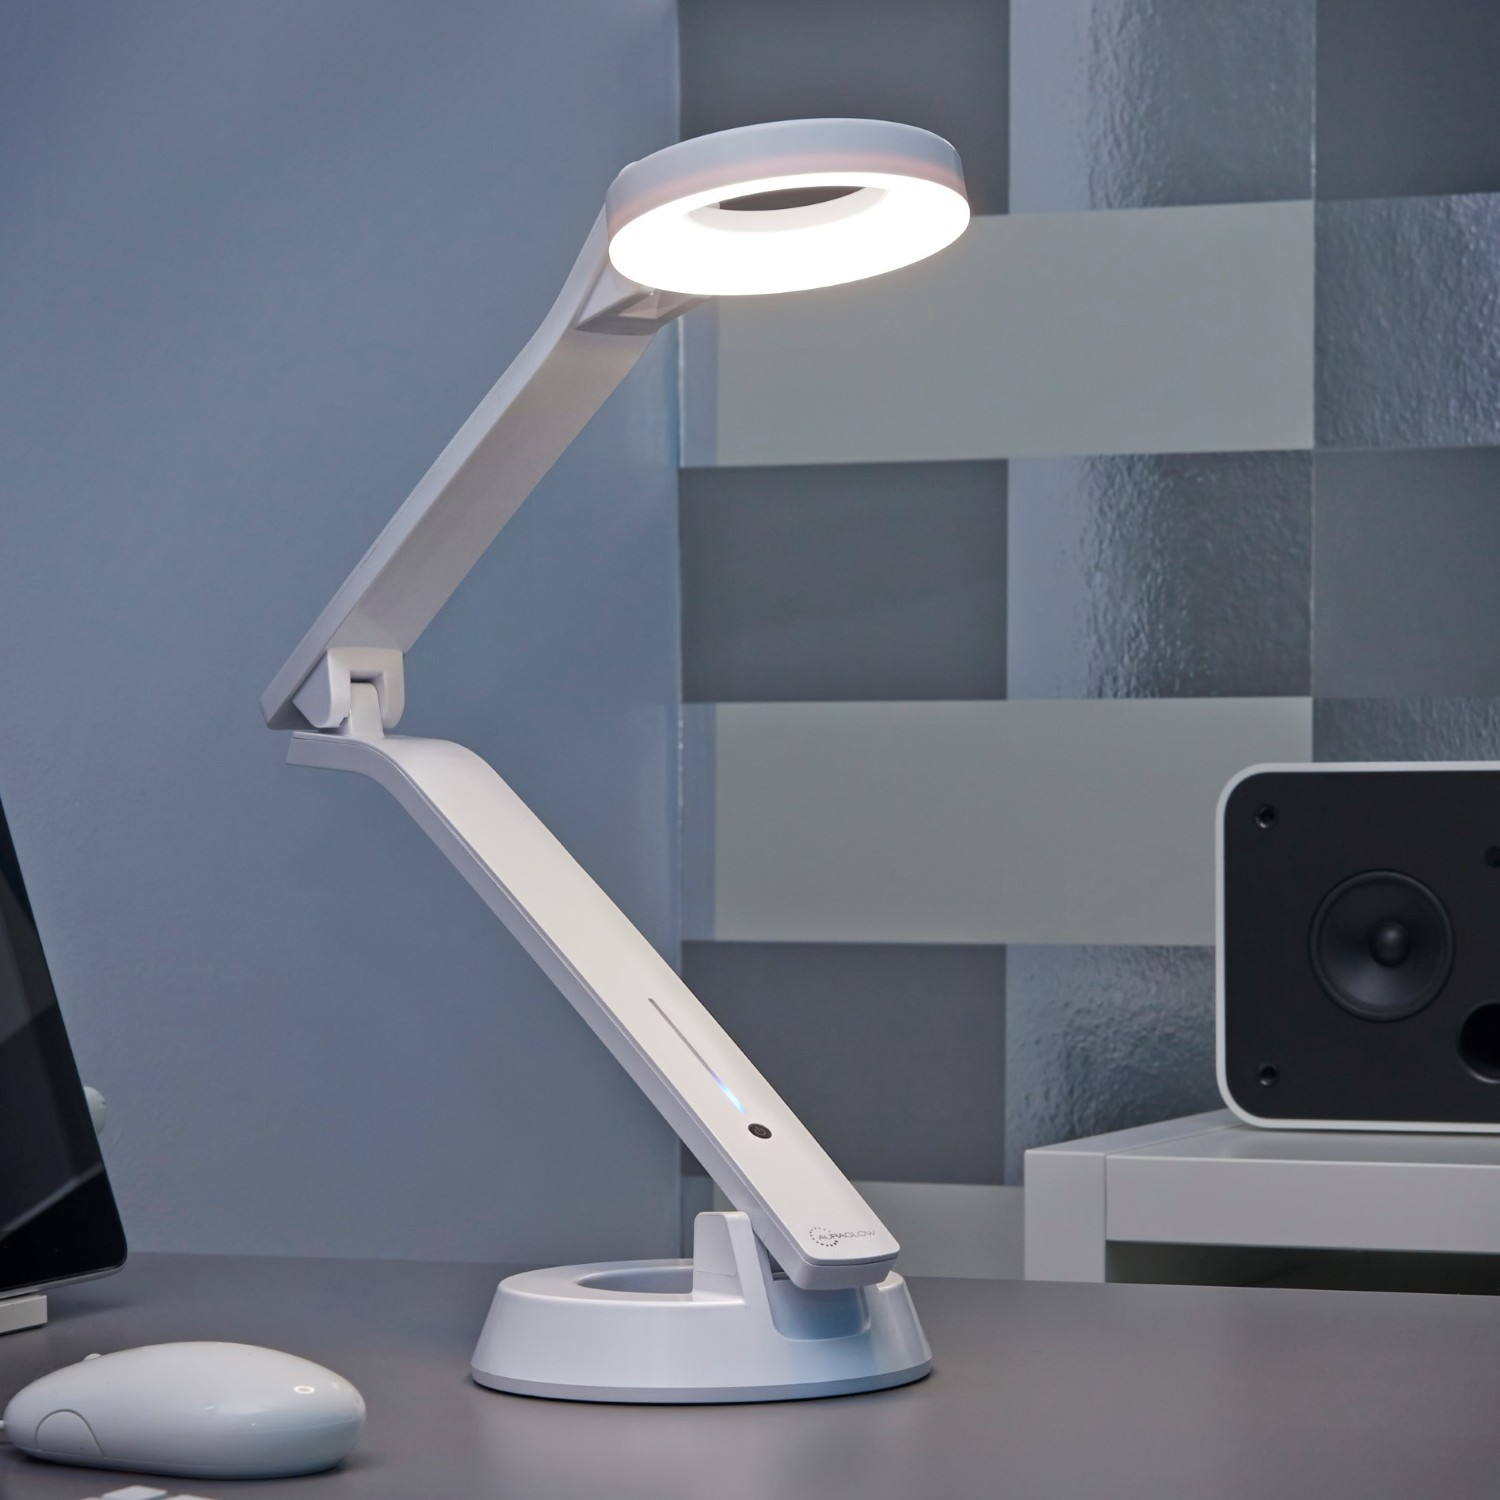 Led Halo Desk Lamp For Office And Home Get The Light Just Right Auraglow Auraglow Led Lighting